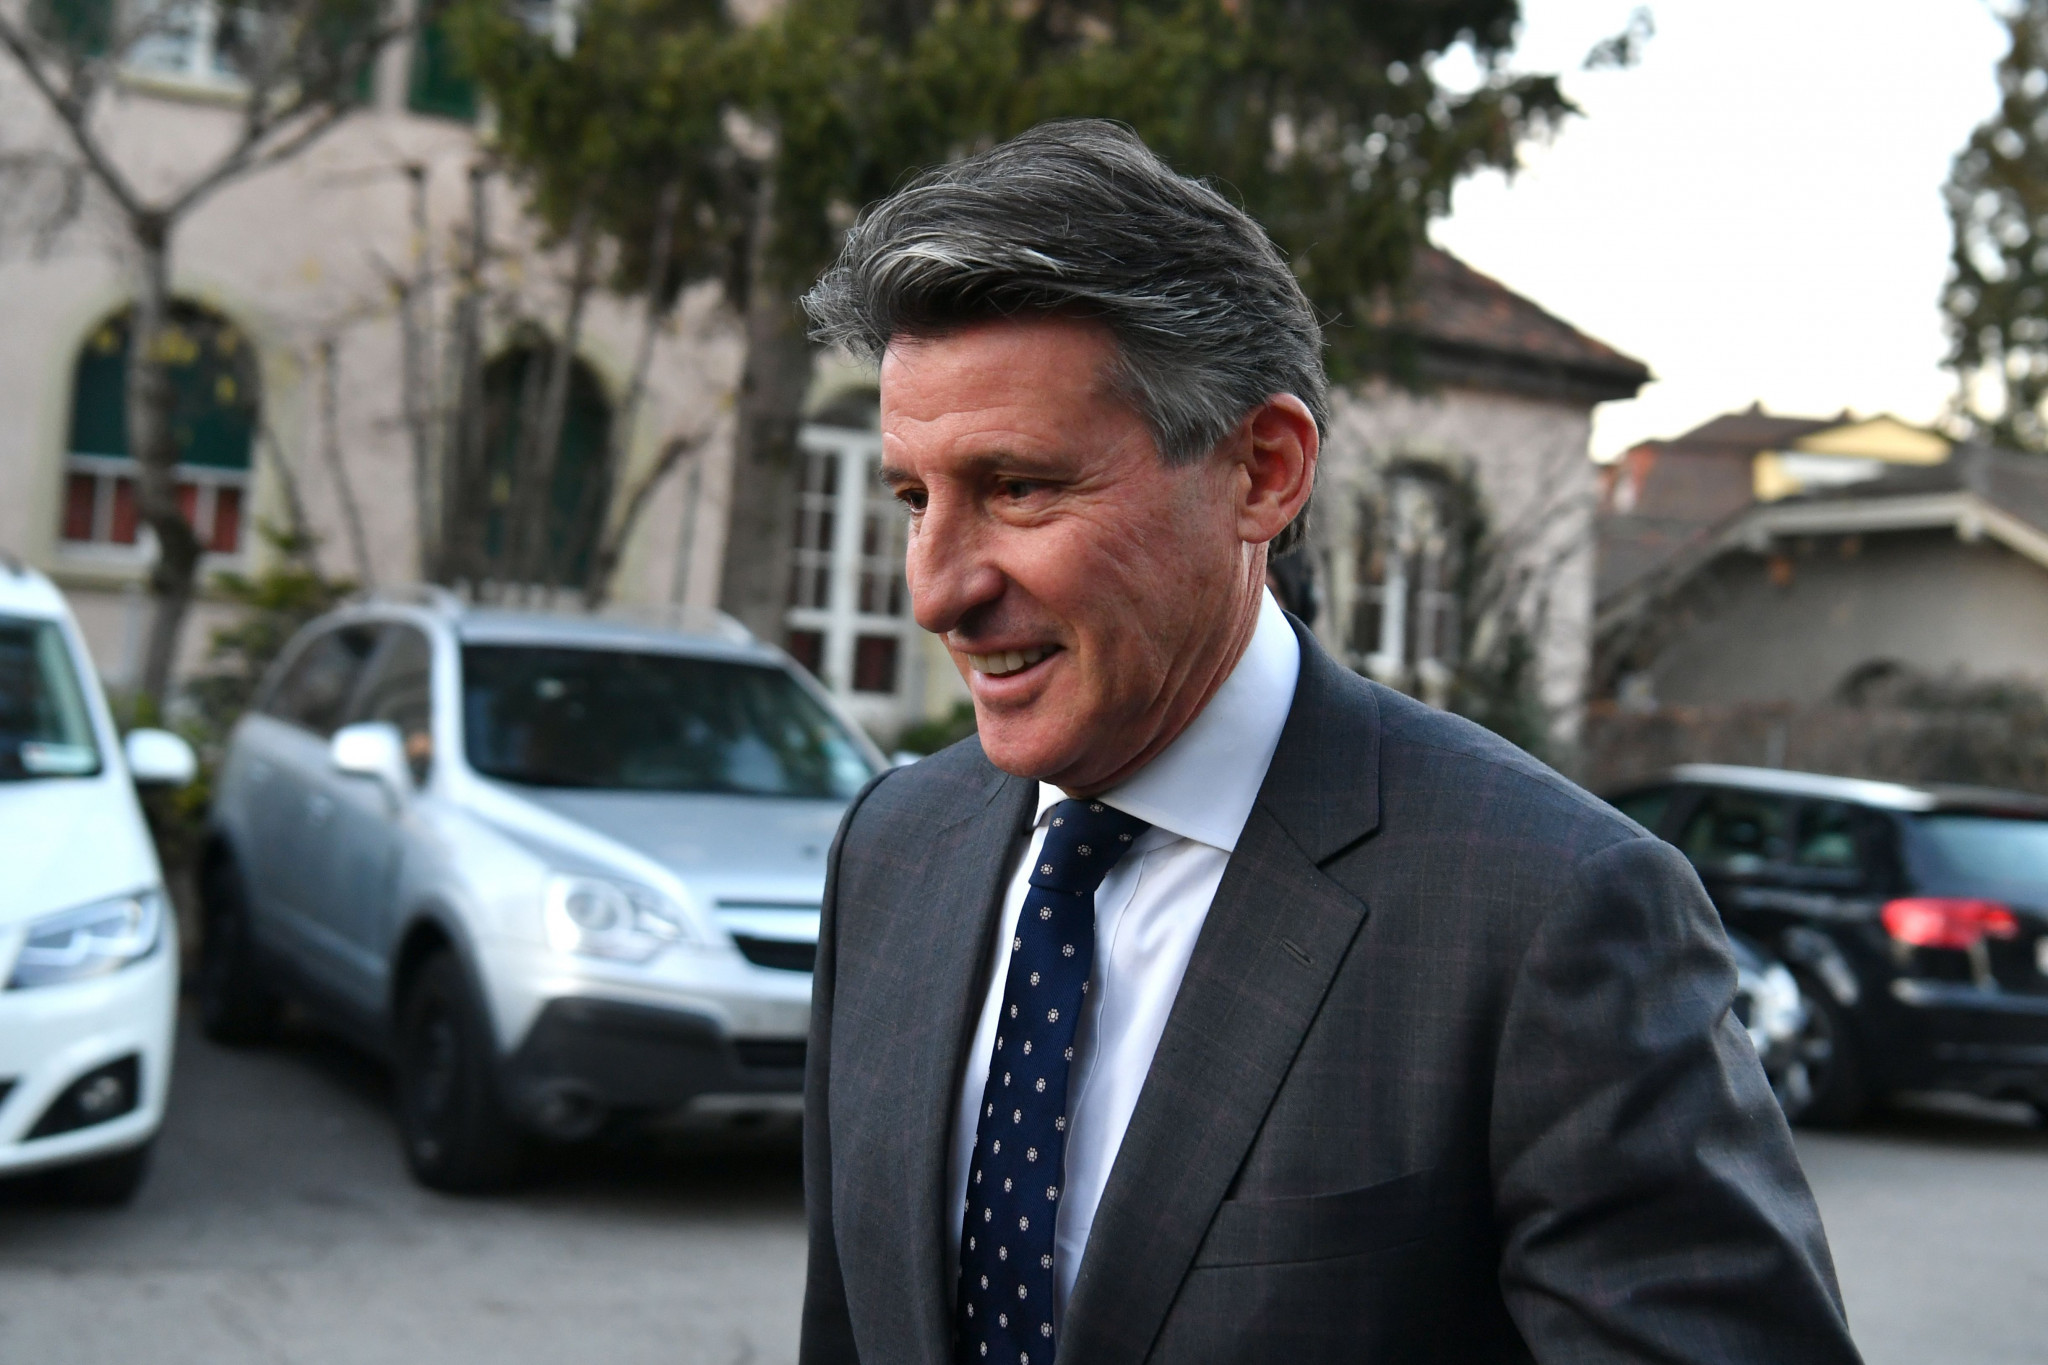 IAAF President Sebastian Coe has repeatedly said the rule is necessary in the interests of fairness ©Getty Images